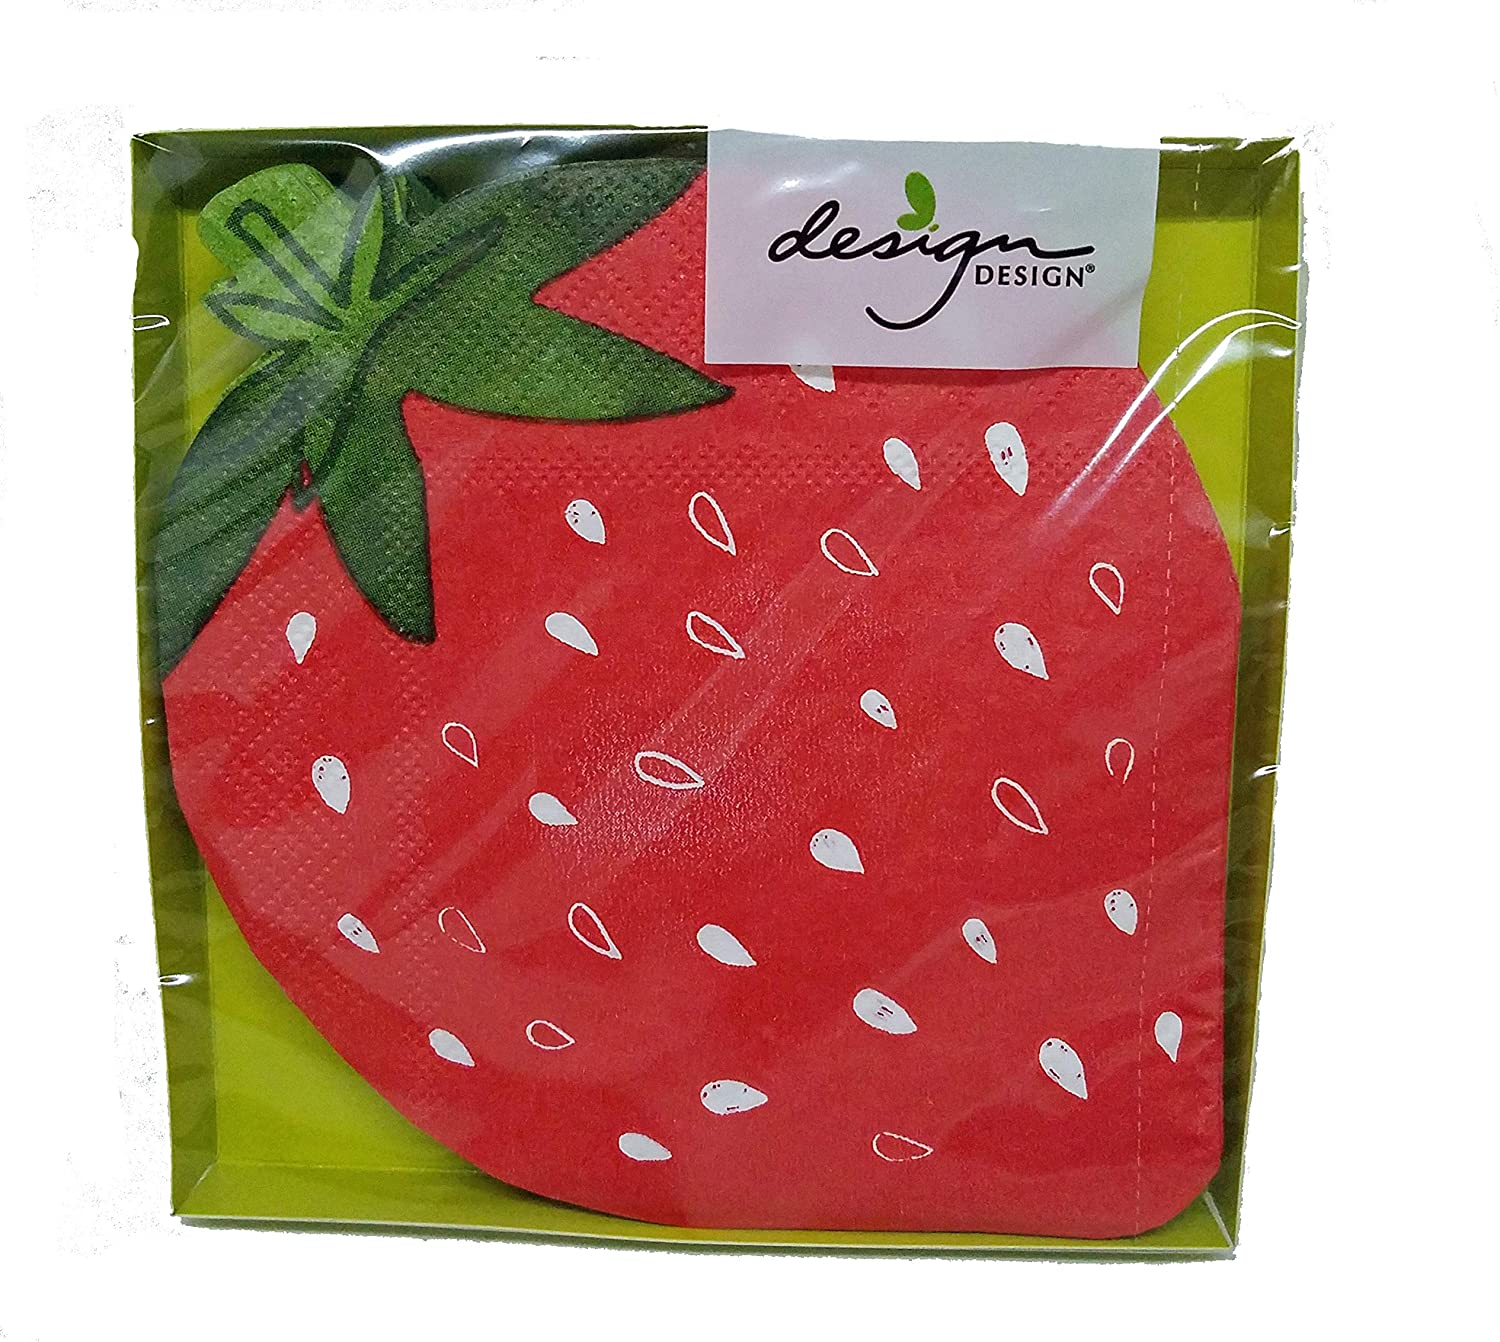 Red Strawberry Shaped Beverage Cocktail Napkins for Summer Party or Picnic, 4.75x4.75 Inch